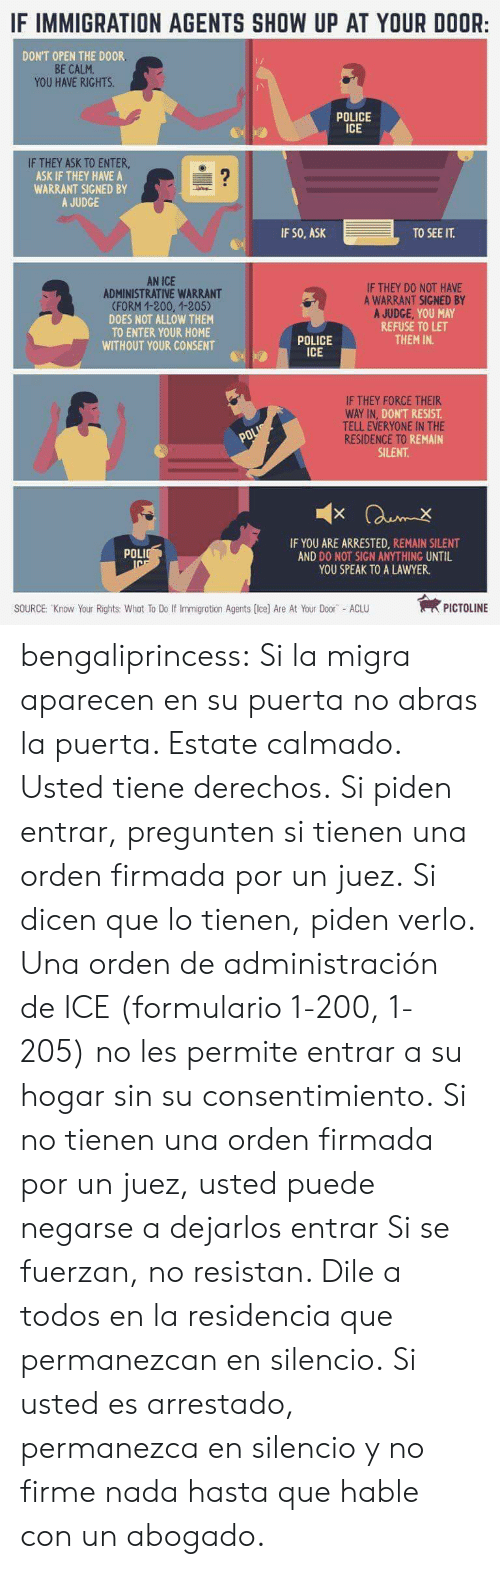 Orden: IF IMMIGRATION AGENTS SHOW UP AT YOUR DOOR:  DON'T OPEN THE DOOR  BE CALM  YOU HAVE RIGHTS  POLICE  ICE  IF THEY ASK TO ENTER  ASK IF THEY HAVE A  WARRANT SIGNED BY  A JUDGE  IF SO, ASK  TO SEE IT.  AN ICE  ADMINISTRATIVE WARRANT  (FORM 1-200, 1-205)  DOES NOT ALLOW THEM  TO ENTER YOUR HOME  WITHOUT YOUR CONSENT  IF THEY D0 NOT HAVE  A WARRANT SIGNED BY  REFUSE TO LET  THEM IN.  POLICE  ICE  IF THEY FORCE THEIR  DON'T RESIST  TELL EVERYONE IN THE  iki REMAIN  SILENT  RESIDENCE TO R  IF YOU ARE ARRESTED, REMAIN SILENT  AND DO NOT SIGN ANYTHING UNTIL  YOU SPEAK TO A LAWYER.  POLI  SOURCE: Know Your Rights: Whot To Do If Immigration Agents (Ice) Are At Your Door ACLU  PICTOLINE bengaliprincess:  Si la migra aparecen en su puerta no abras la puerta. Estate calmado. Usted tiene derechos. Si piden entrar, pregunten si tienen una orden firmada por un juez. Si dicen que lo tienen, piden verlo. Una orden de administración de ICE (formulario 1-200, 1-205) no les permite entrar a su hogar sin su consentimiento. Si no tienen una orden firmada por un juez, usted puede negarse a dejarlos entrar Si se fuerzan, no resistan. Dile a todos en la residencia que permanezcan en silencio. Si usted es arrestado, permanezca en silencio y no firme nada hasta que hable con un abogado.